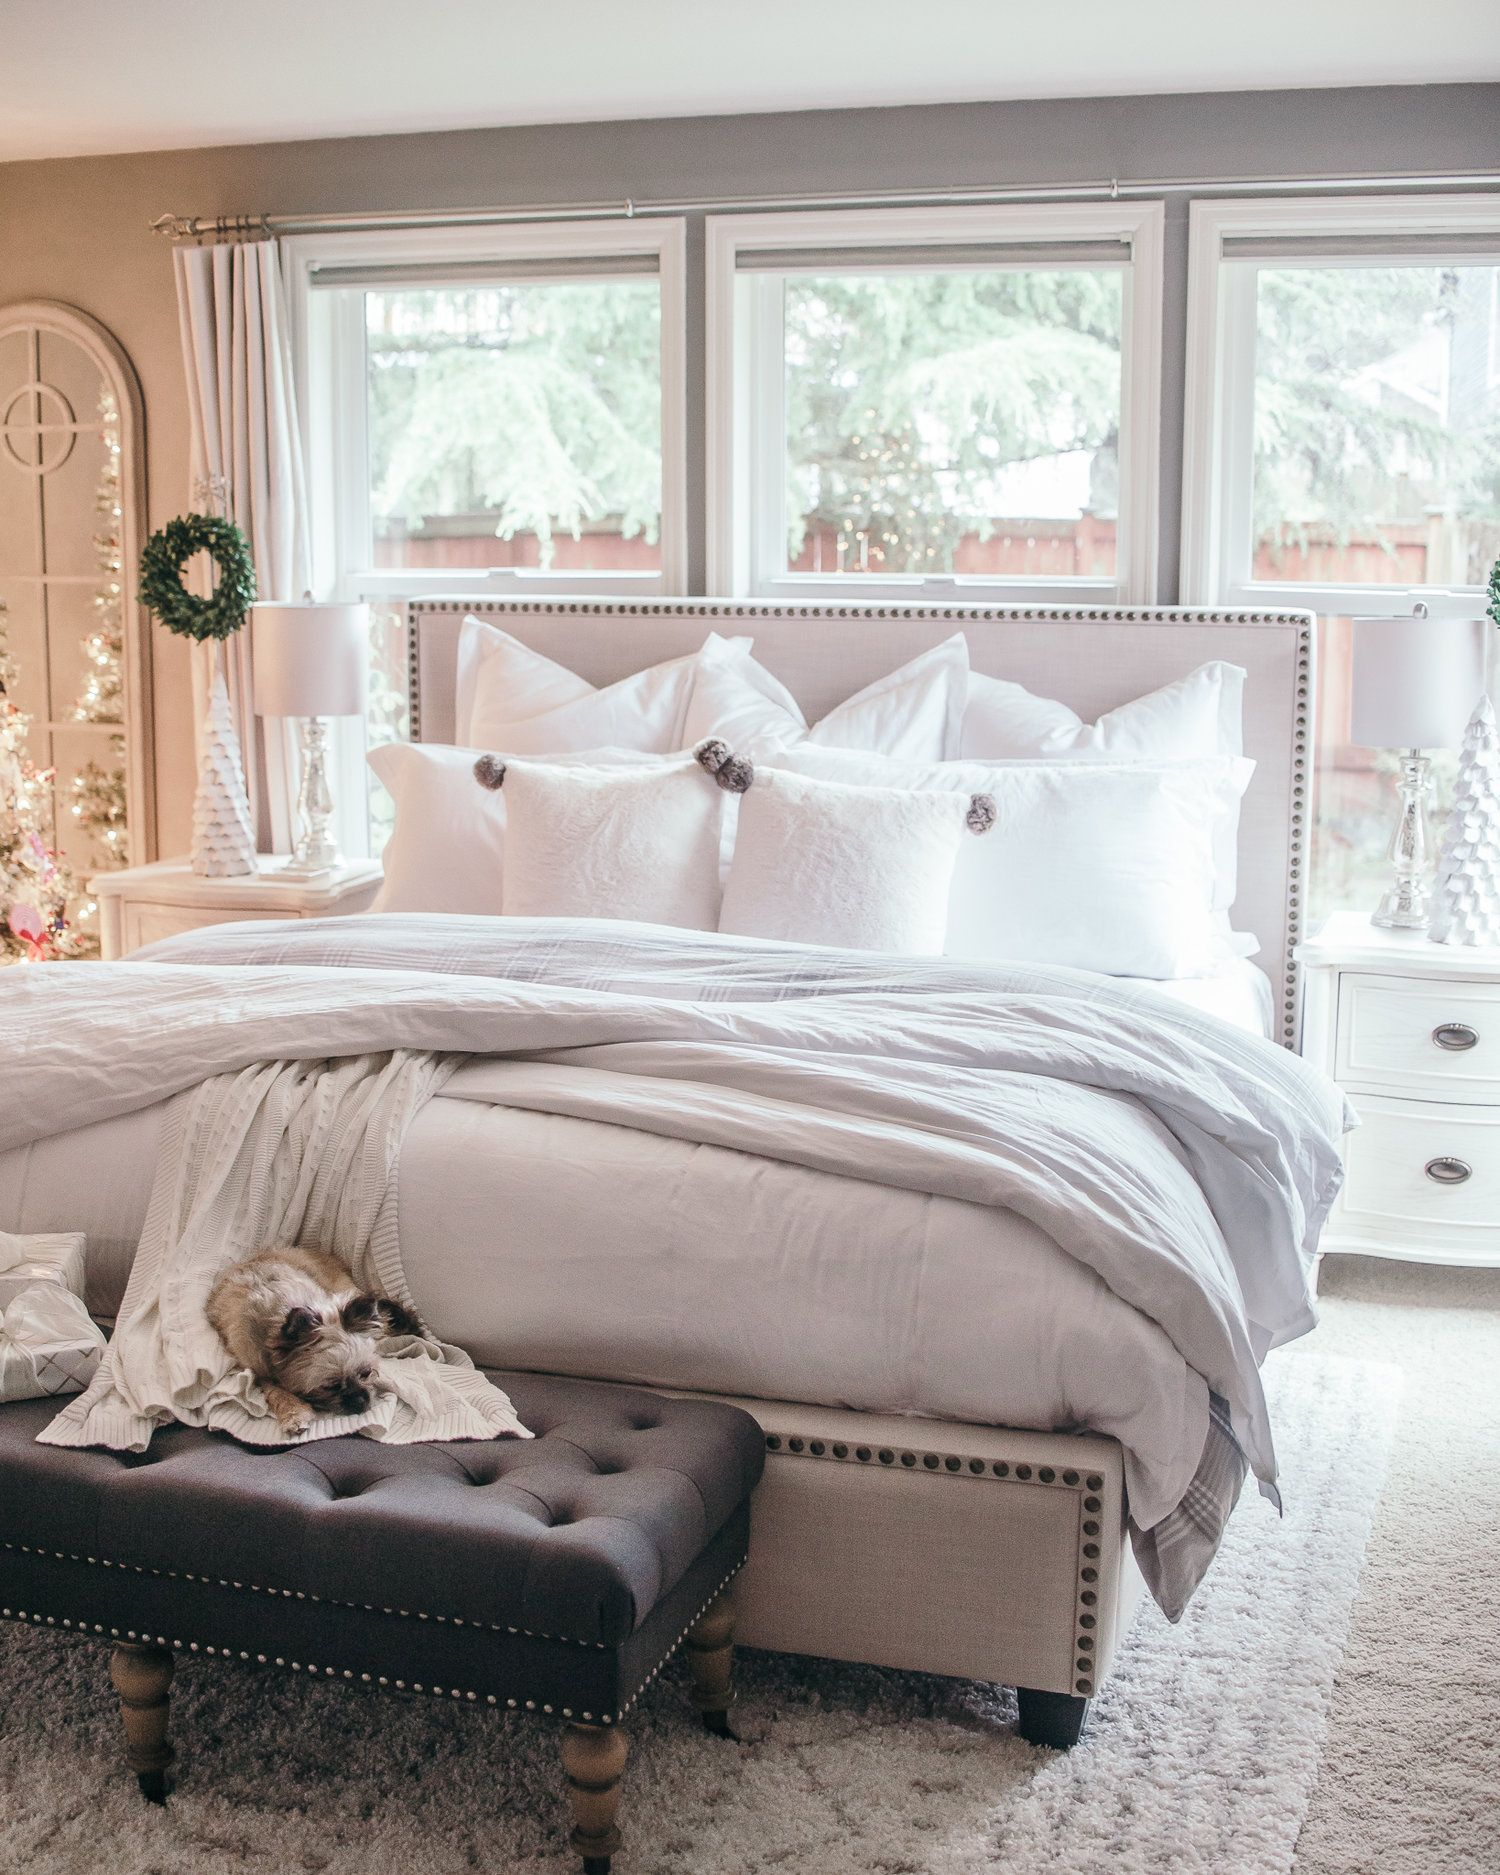 Window behind bed ideas  holiday home tour christmas decor ideas  master bedroom bedrooms